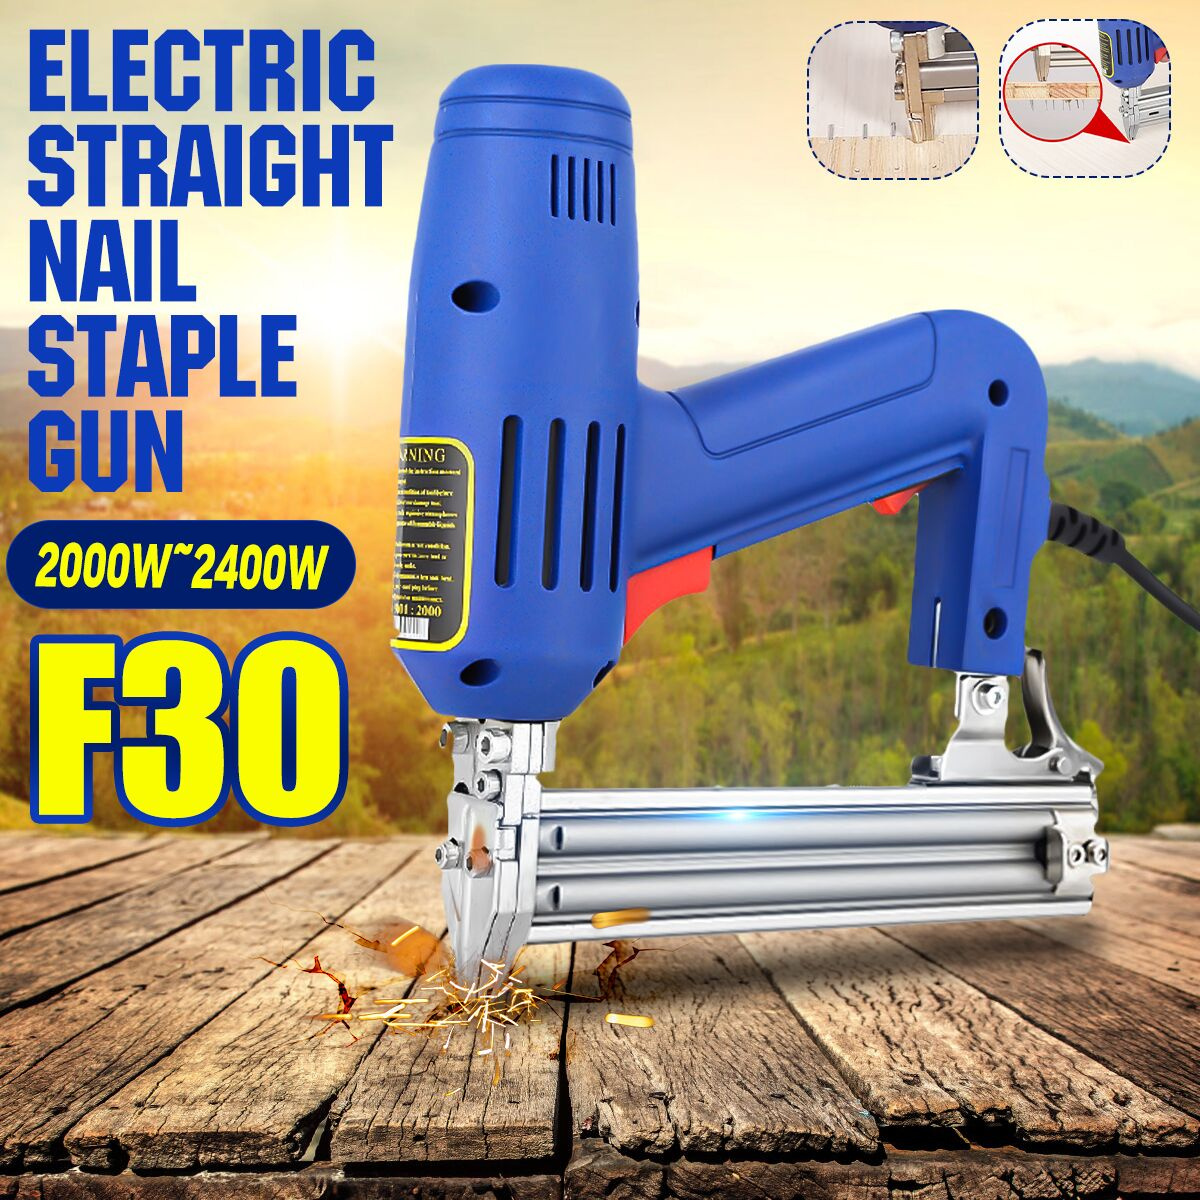 Drillpro Electric Straight Nail Gu 2000W 220V Heavy-Duty Woodworking Tool High Power Electrical Staple Nail Woodworking Tools